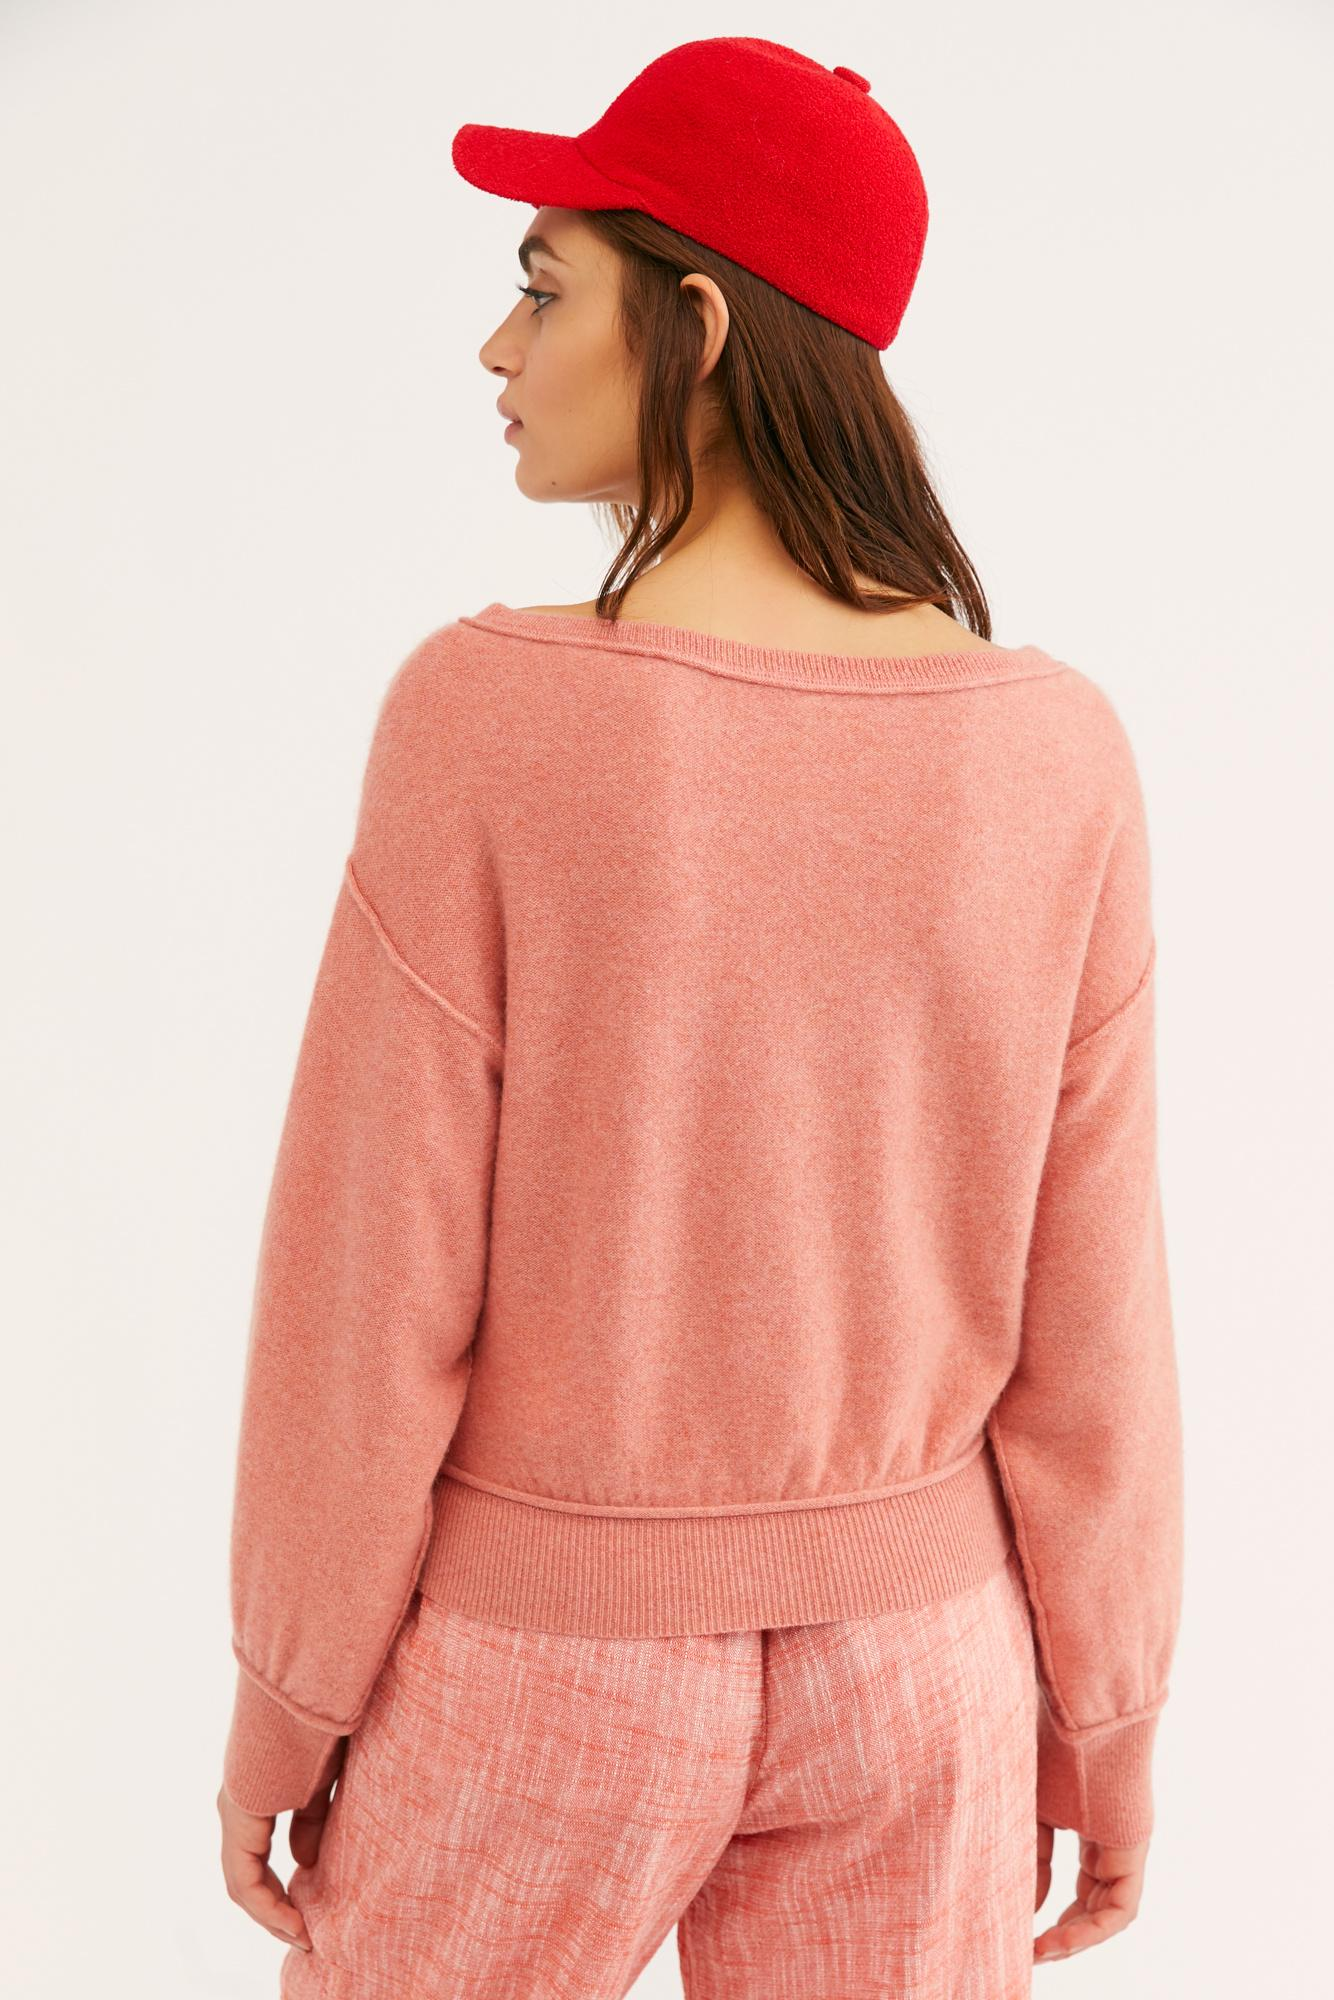 af63adb7c90 ... Love Like This Cashmere Pullover - Lyst. View fullscreen